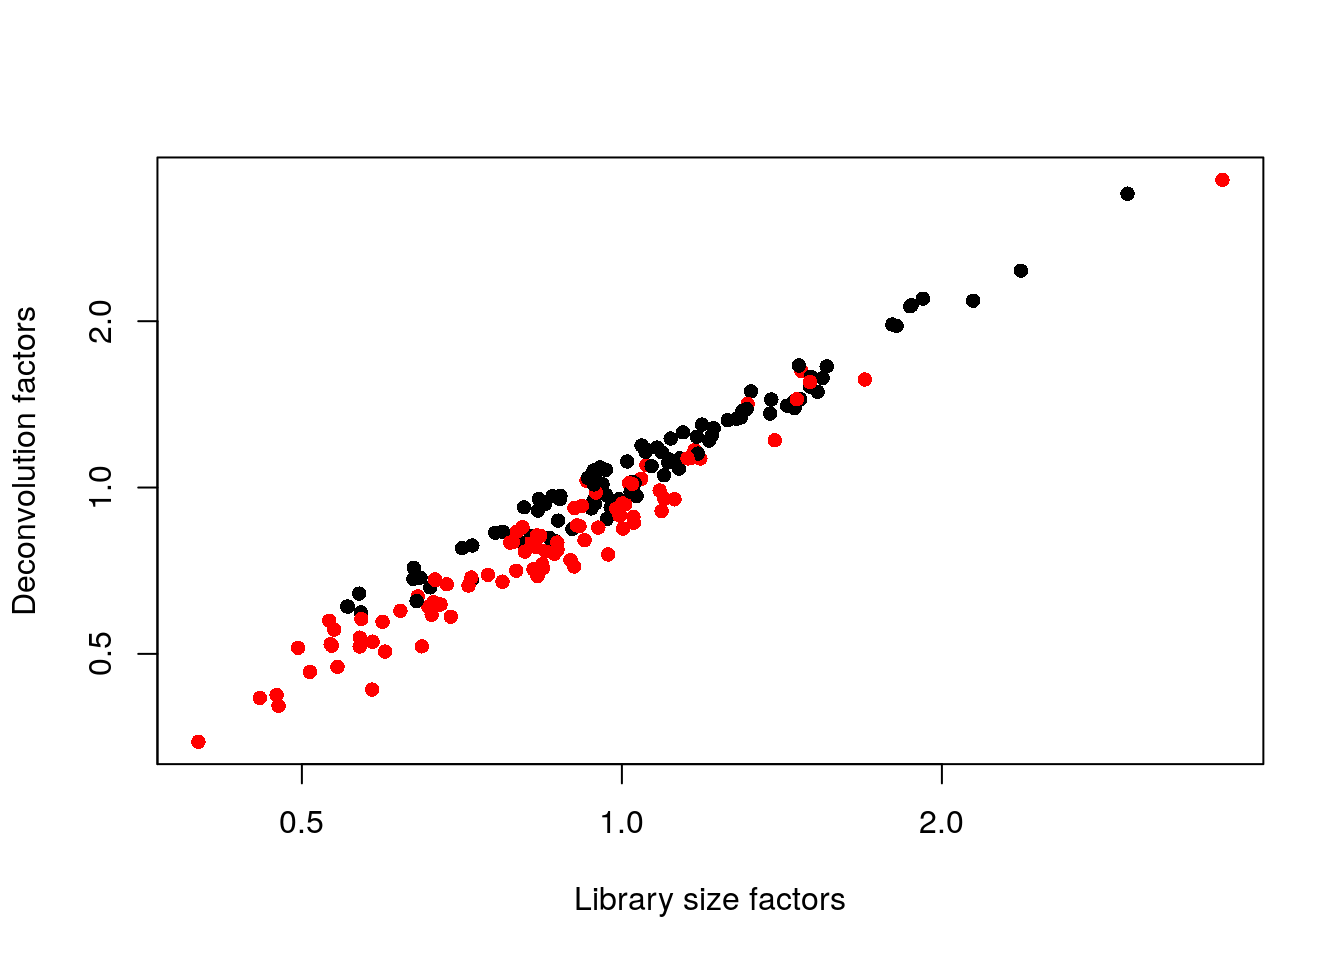 Relationship between the library size factors and the deconvolution size factors in the 416B dataset. Each cell is colored according to its oncogene induction status.